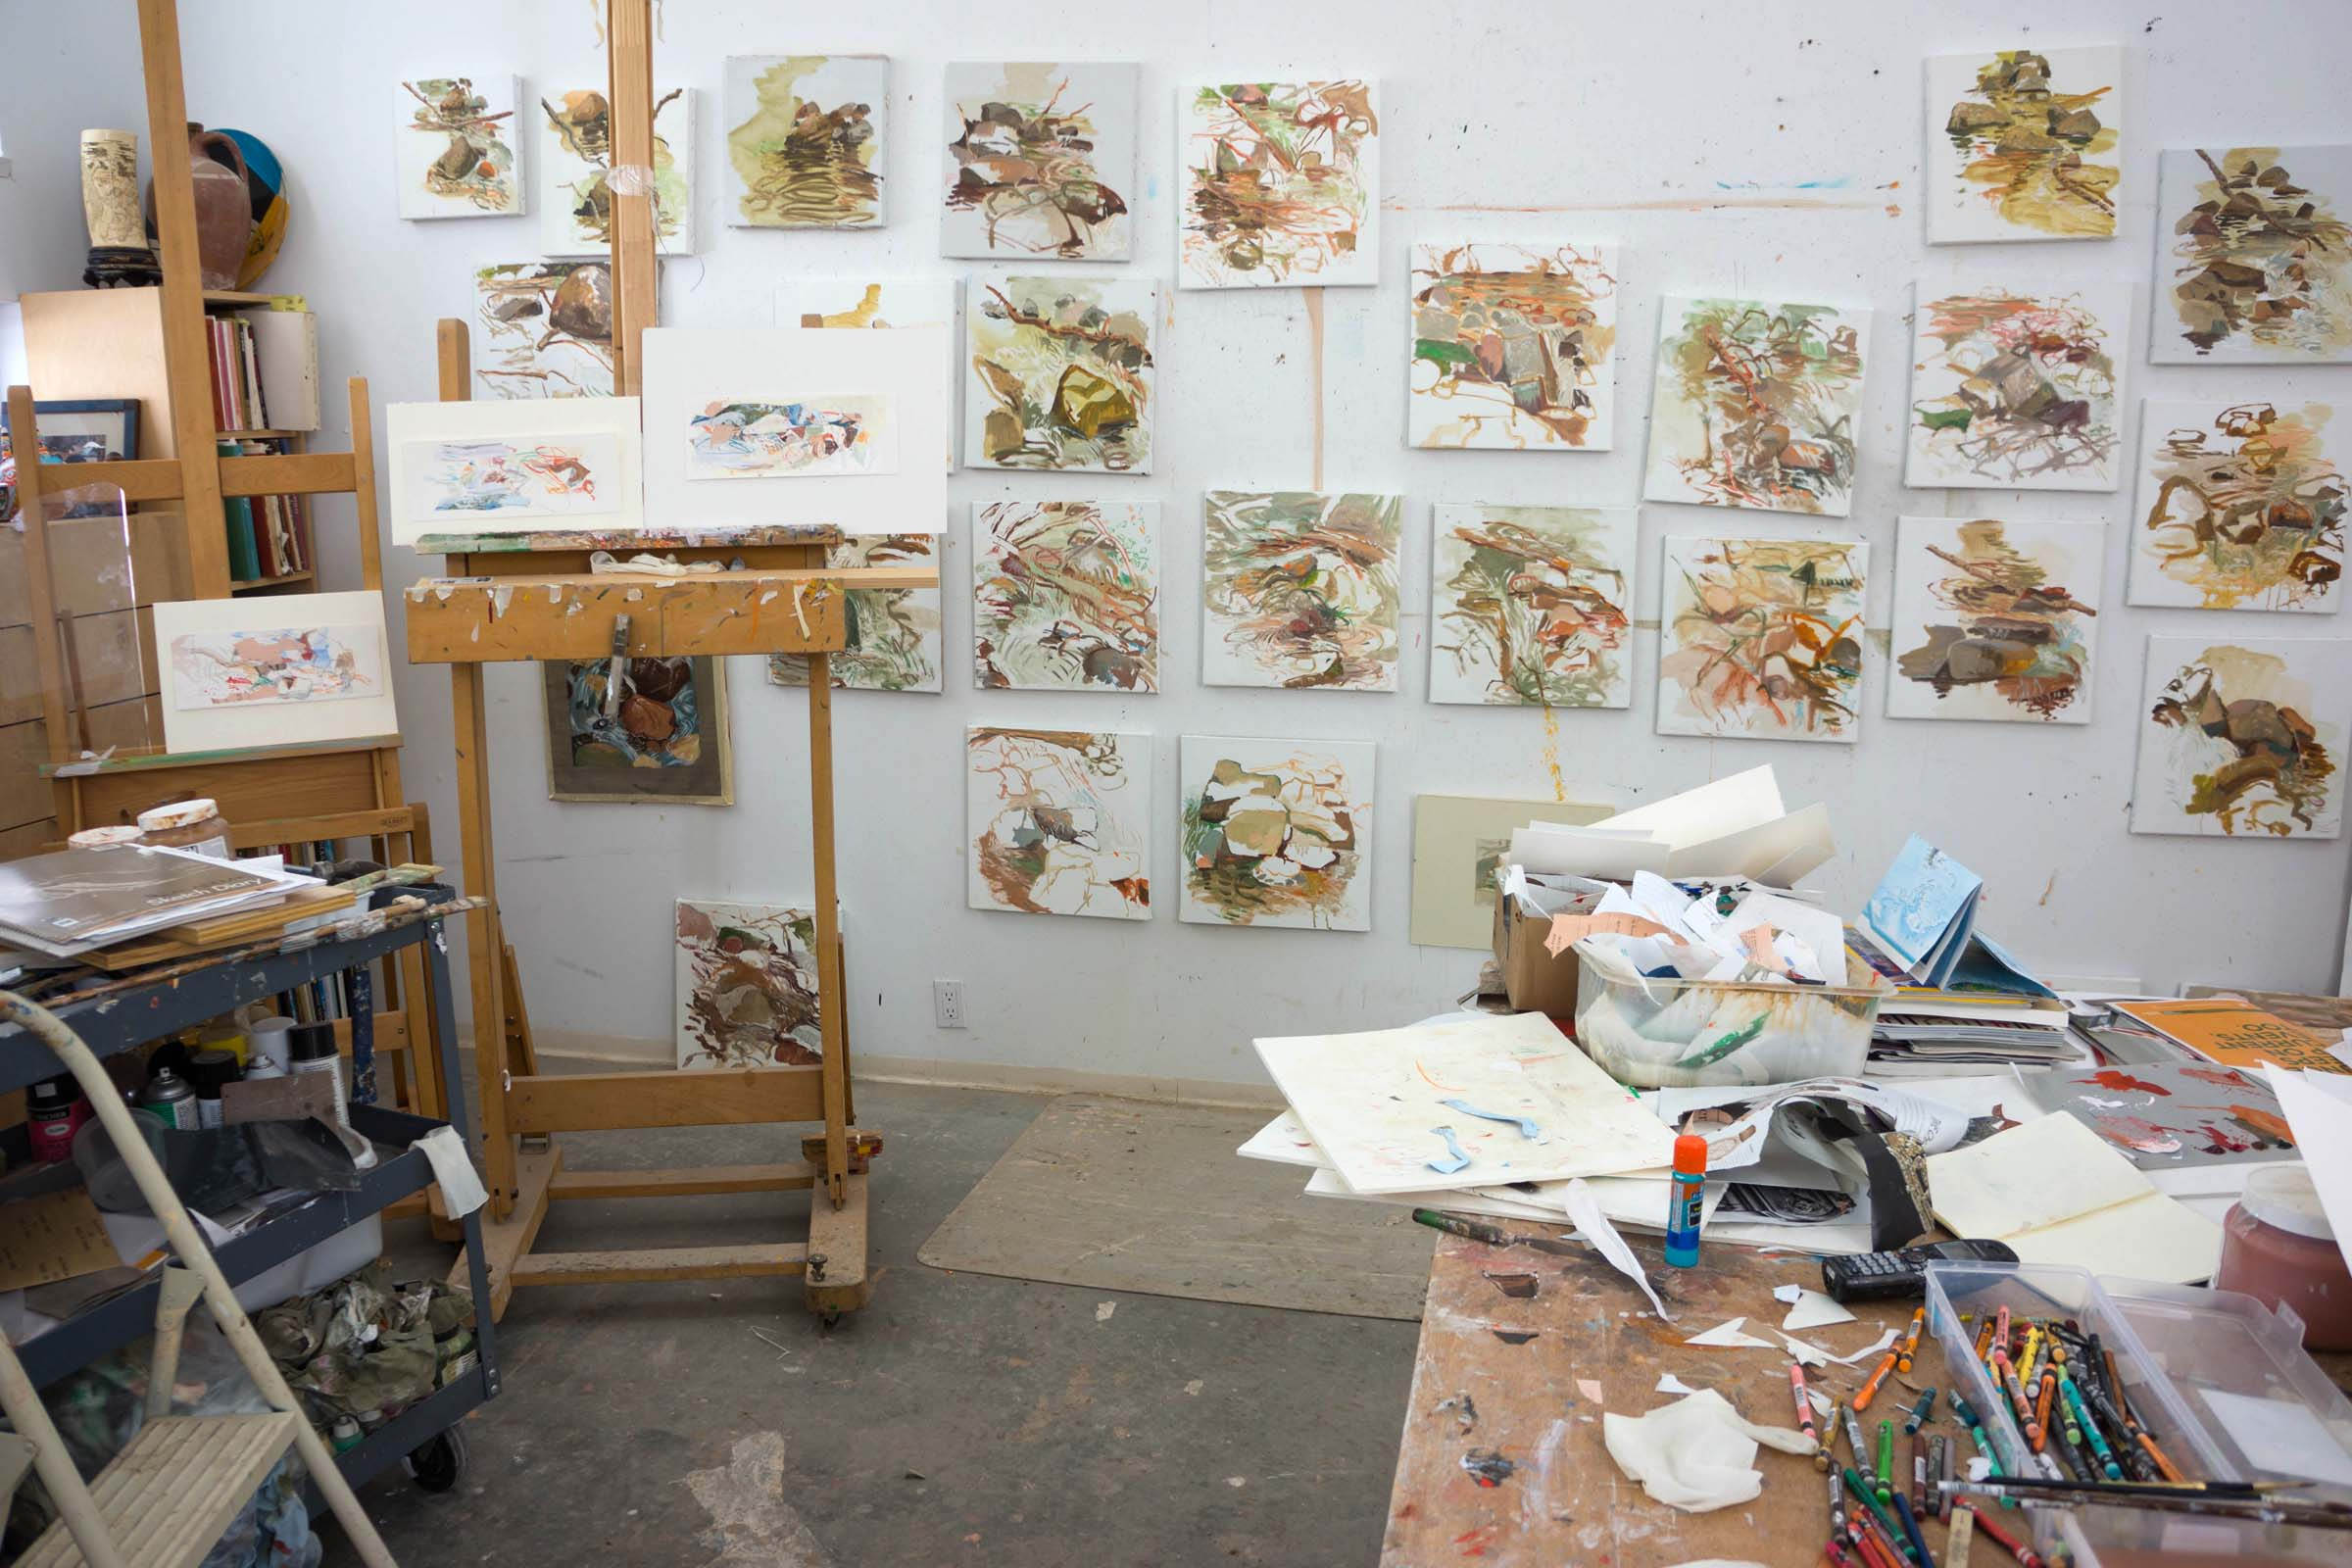 1/5/14 studio interior with new collages